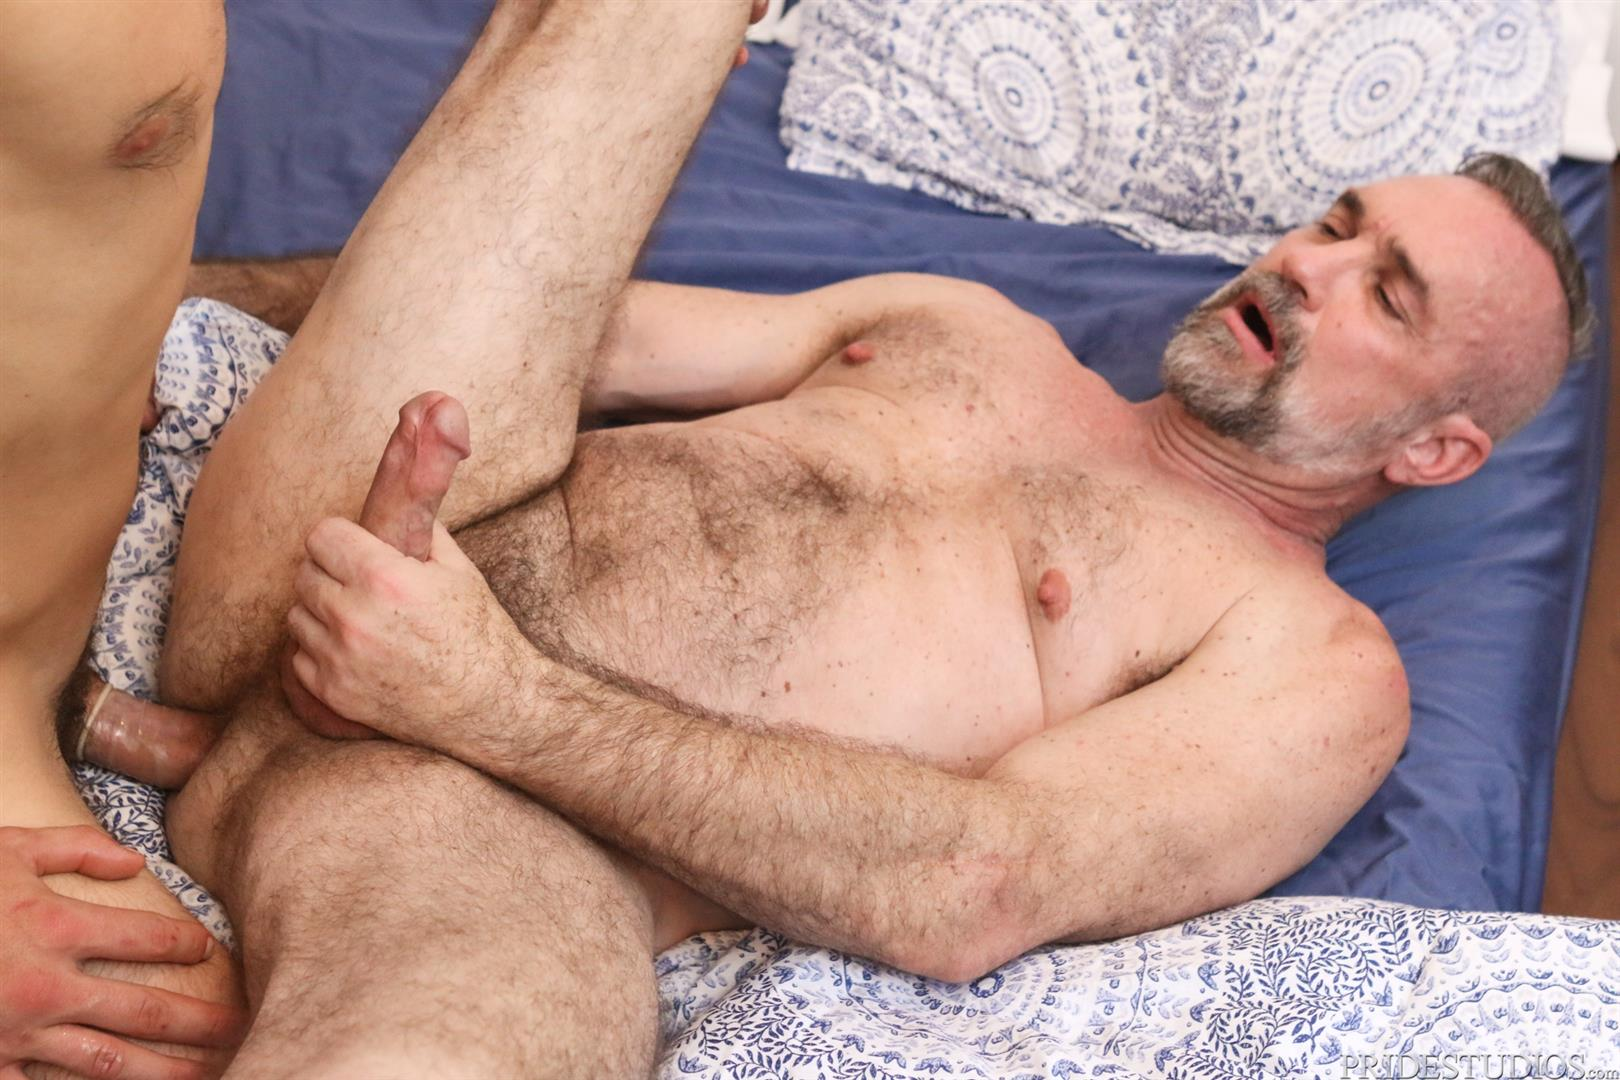 Dylan-Lucas-Dante-Colle-and-Peter-Rough-Hairy-Daddy-Getting-Fucked-14 Hairy Daddy Gets Fucked By Dante Colle For His Birthday